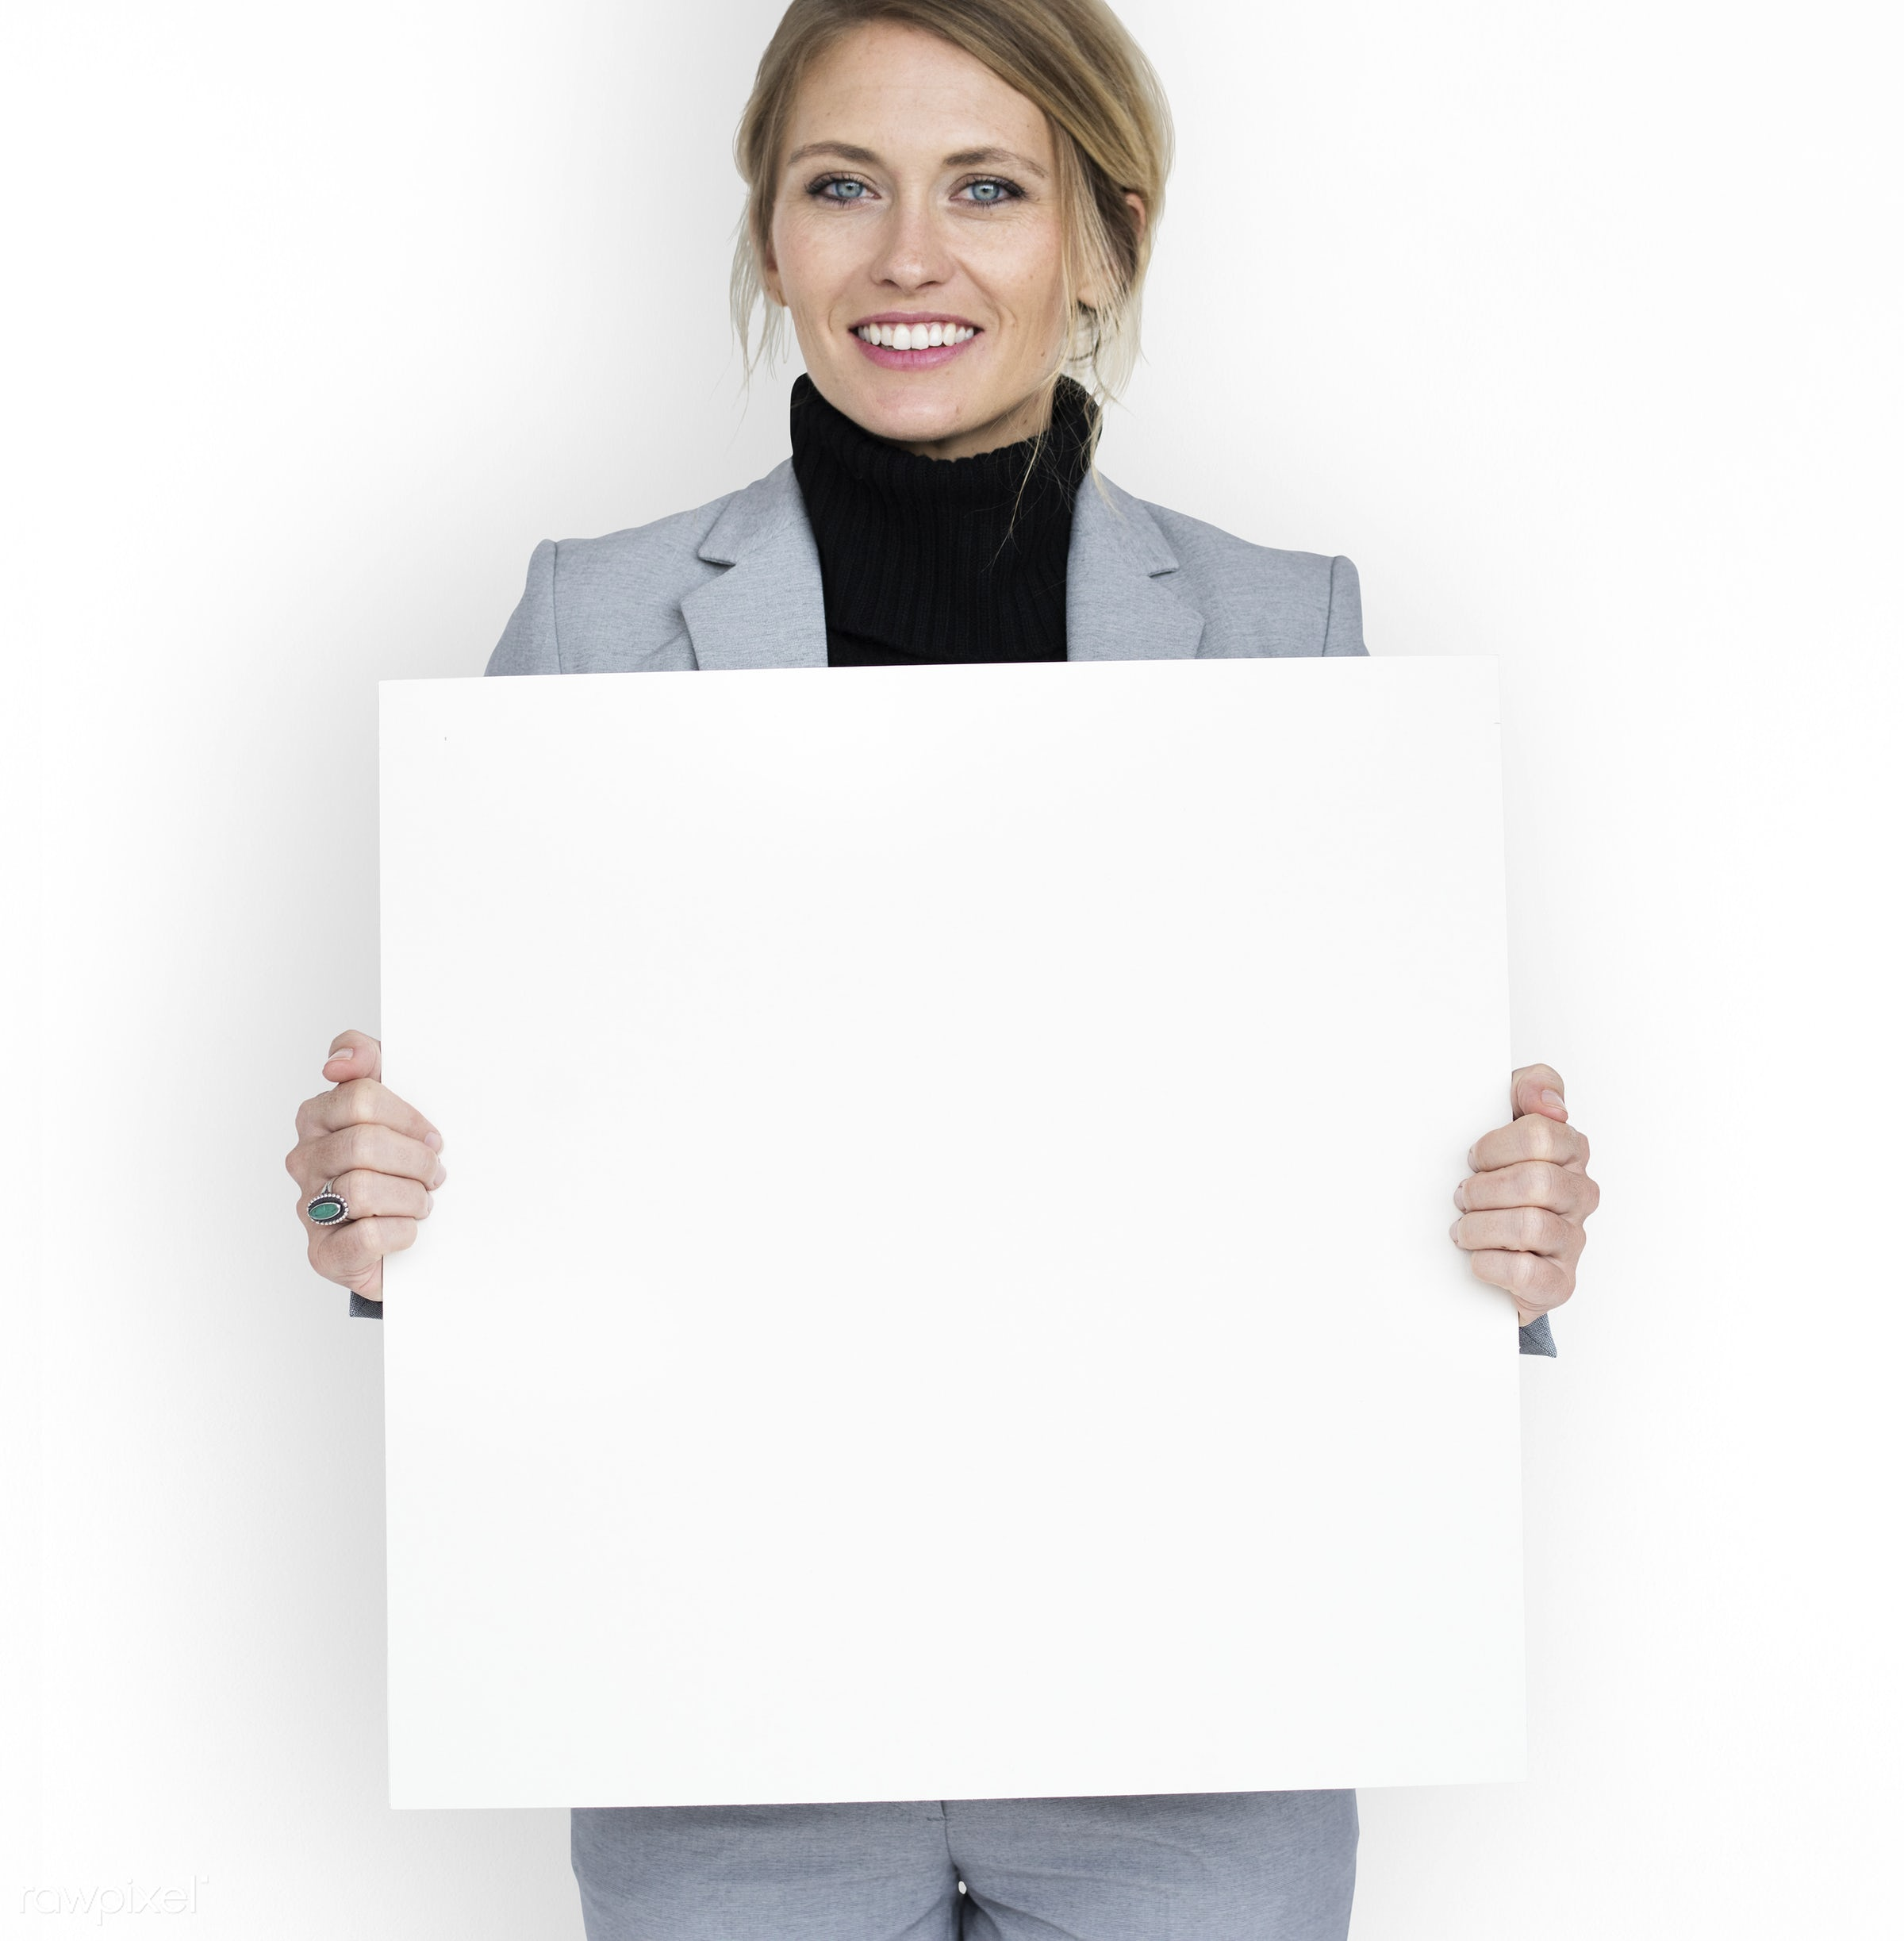 studio, expression, person, holding, people, placard, woman, smile, cheerful, smiling, isolated, white, happiness,...